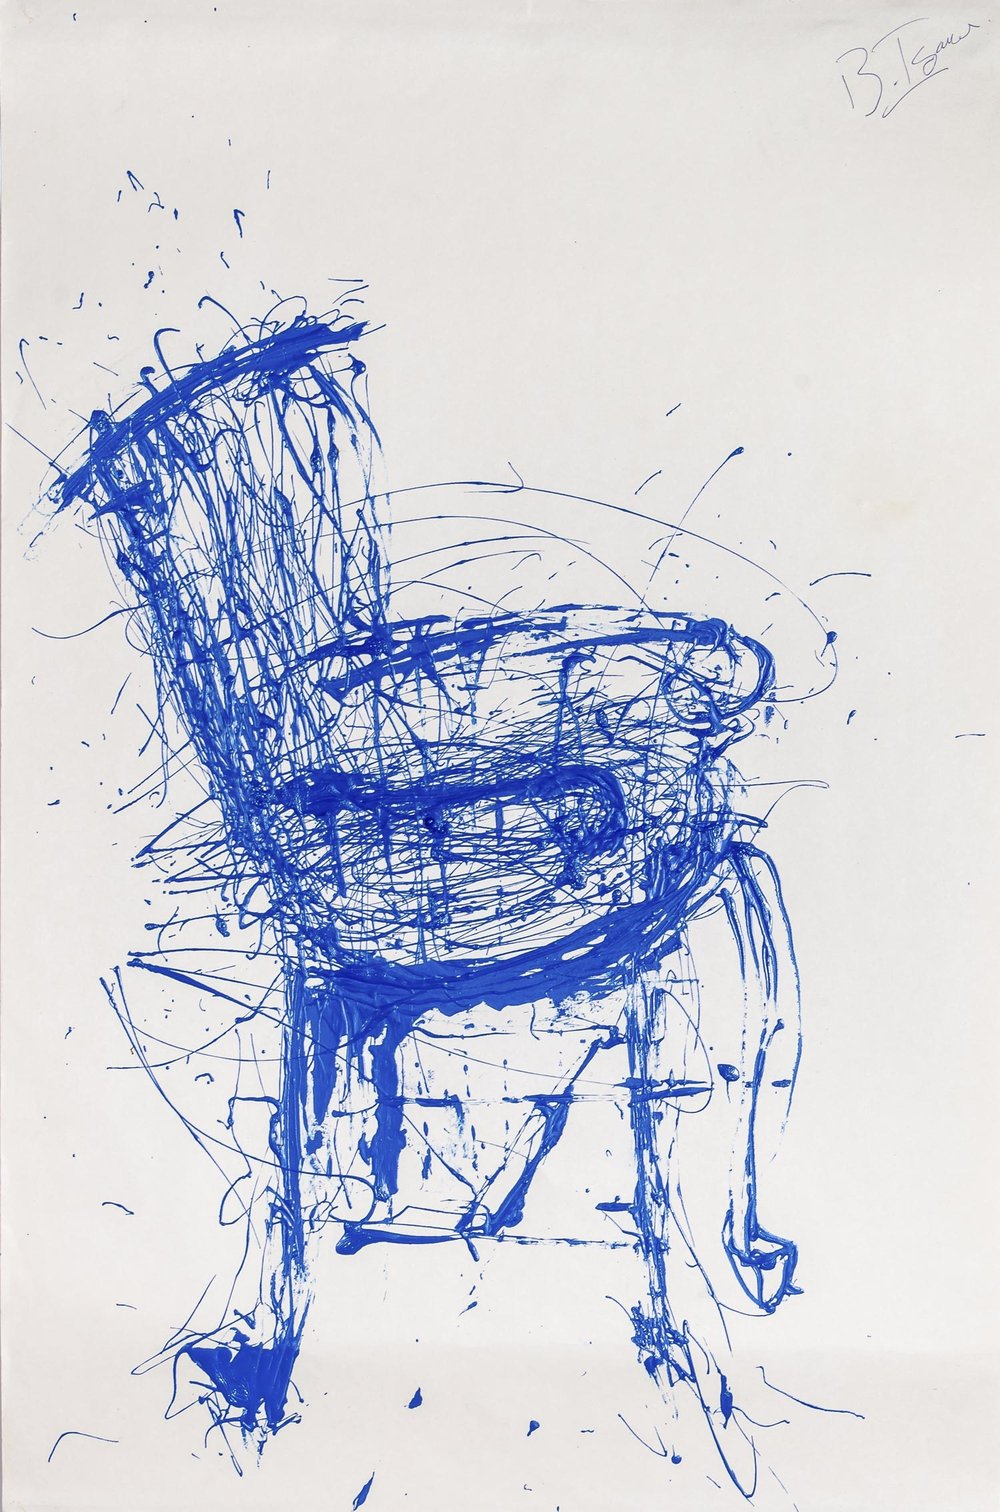 BLUE CHAIR  Industrial Paint on Paper |48 x 72 cm